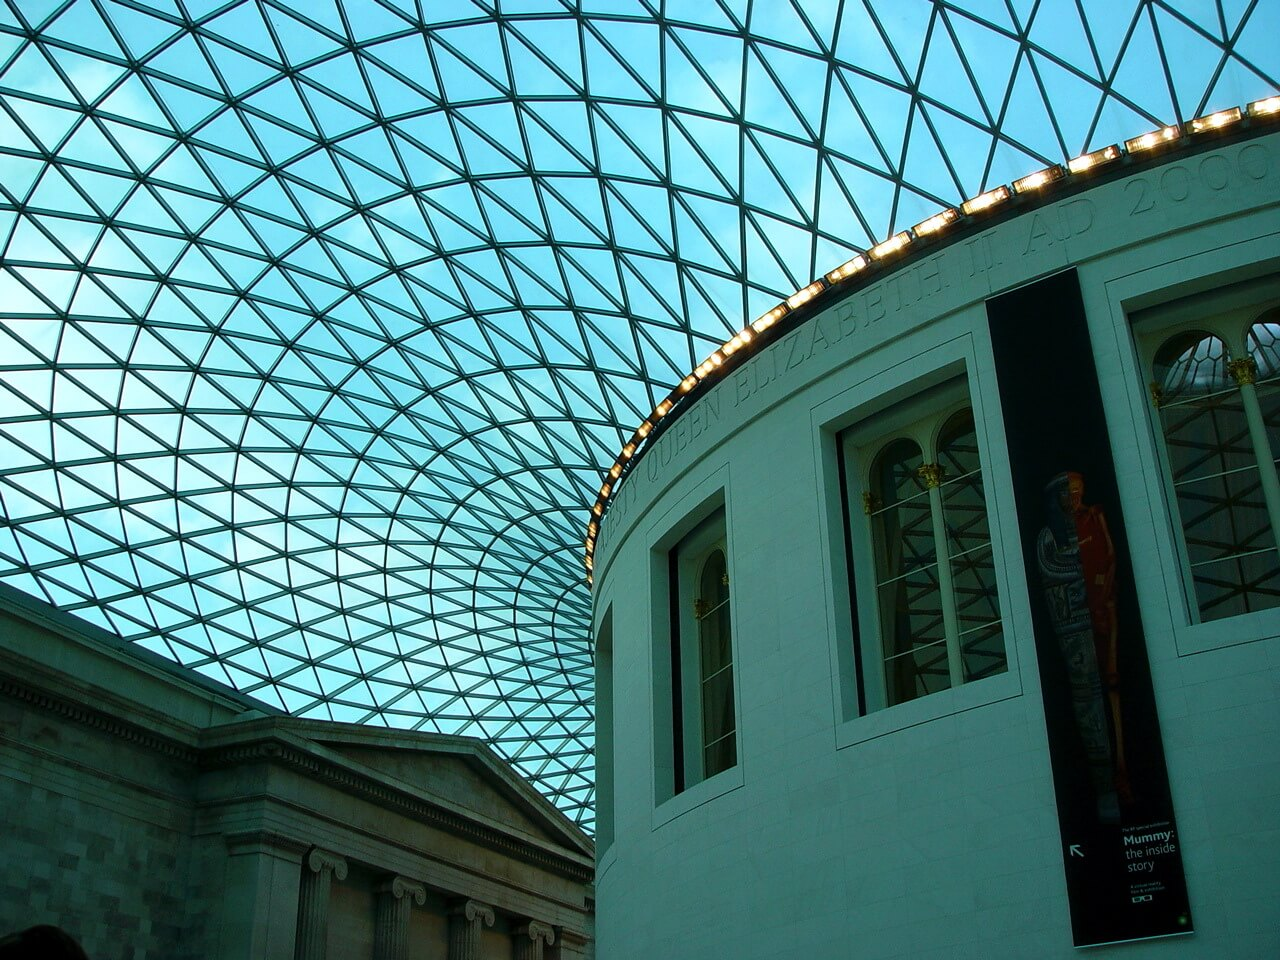 View of glass roof over the Great Court at the British Museum